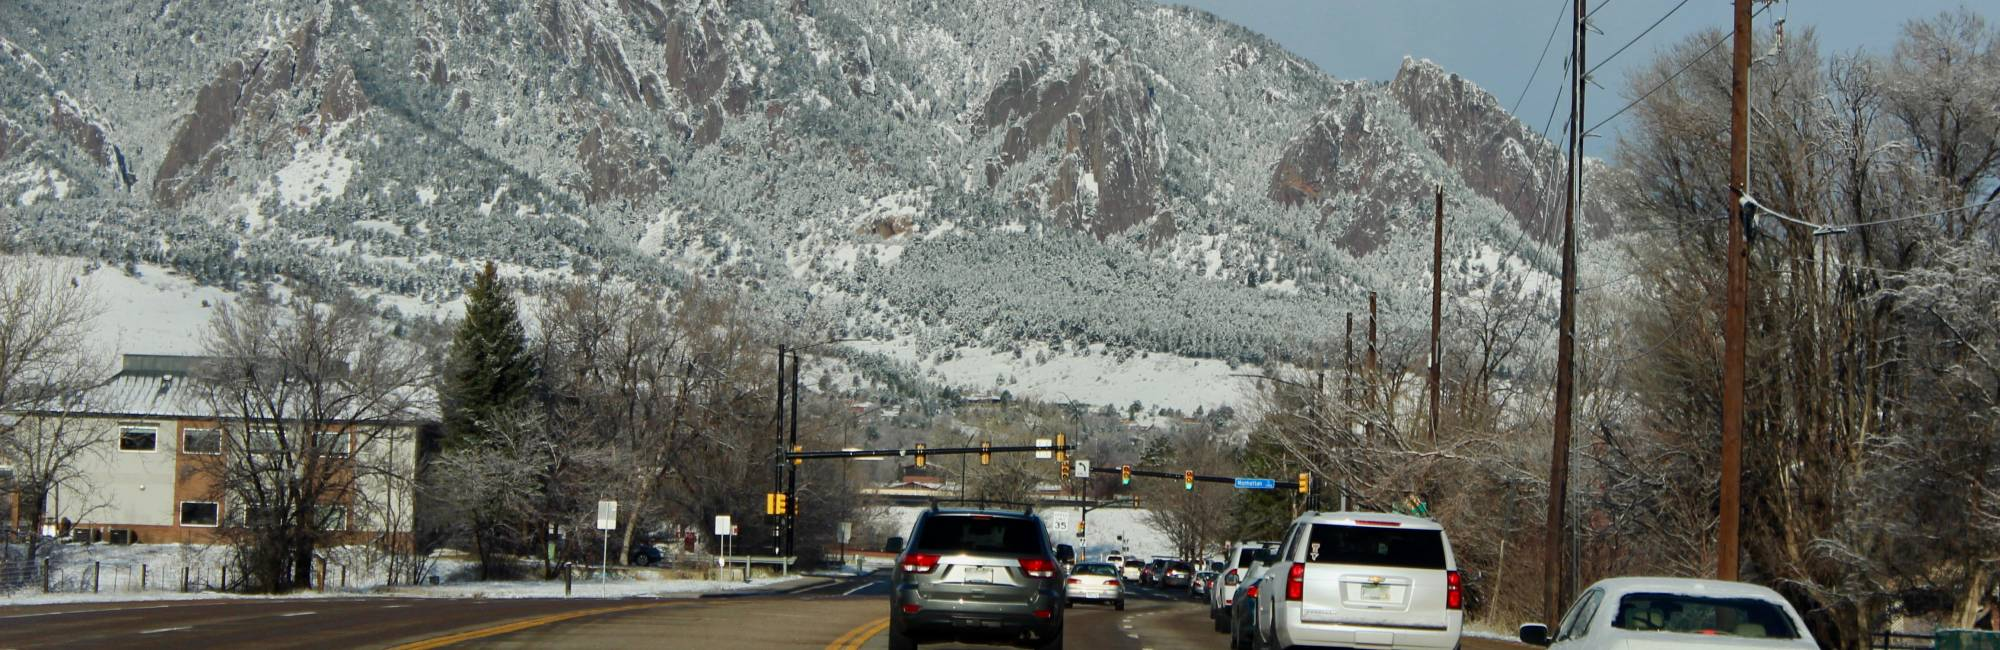 traffic on Broadway in Boulder, Colorado